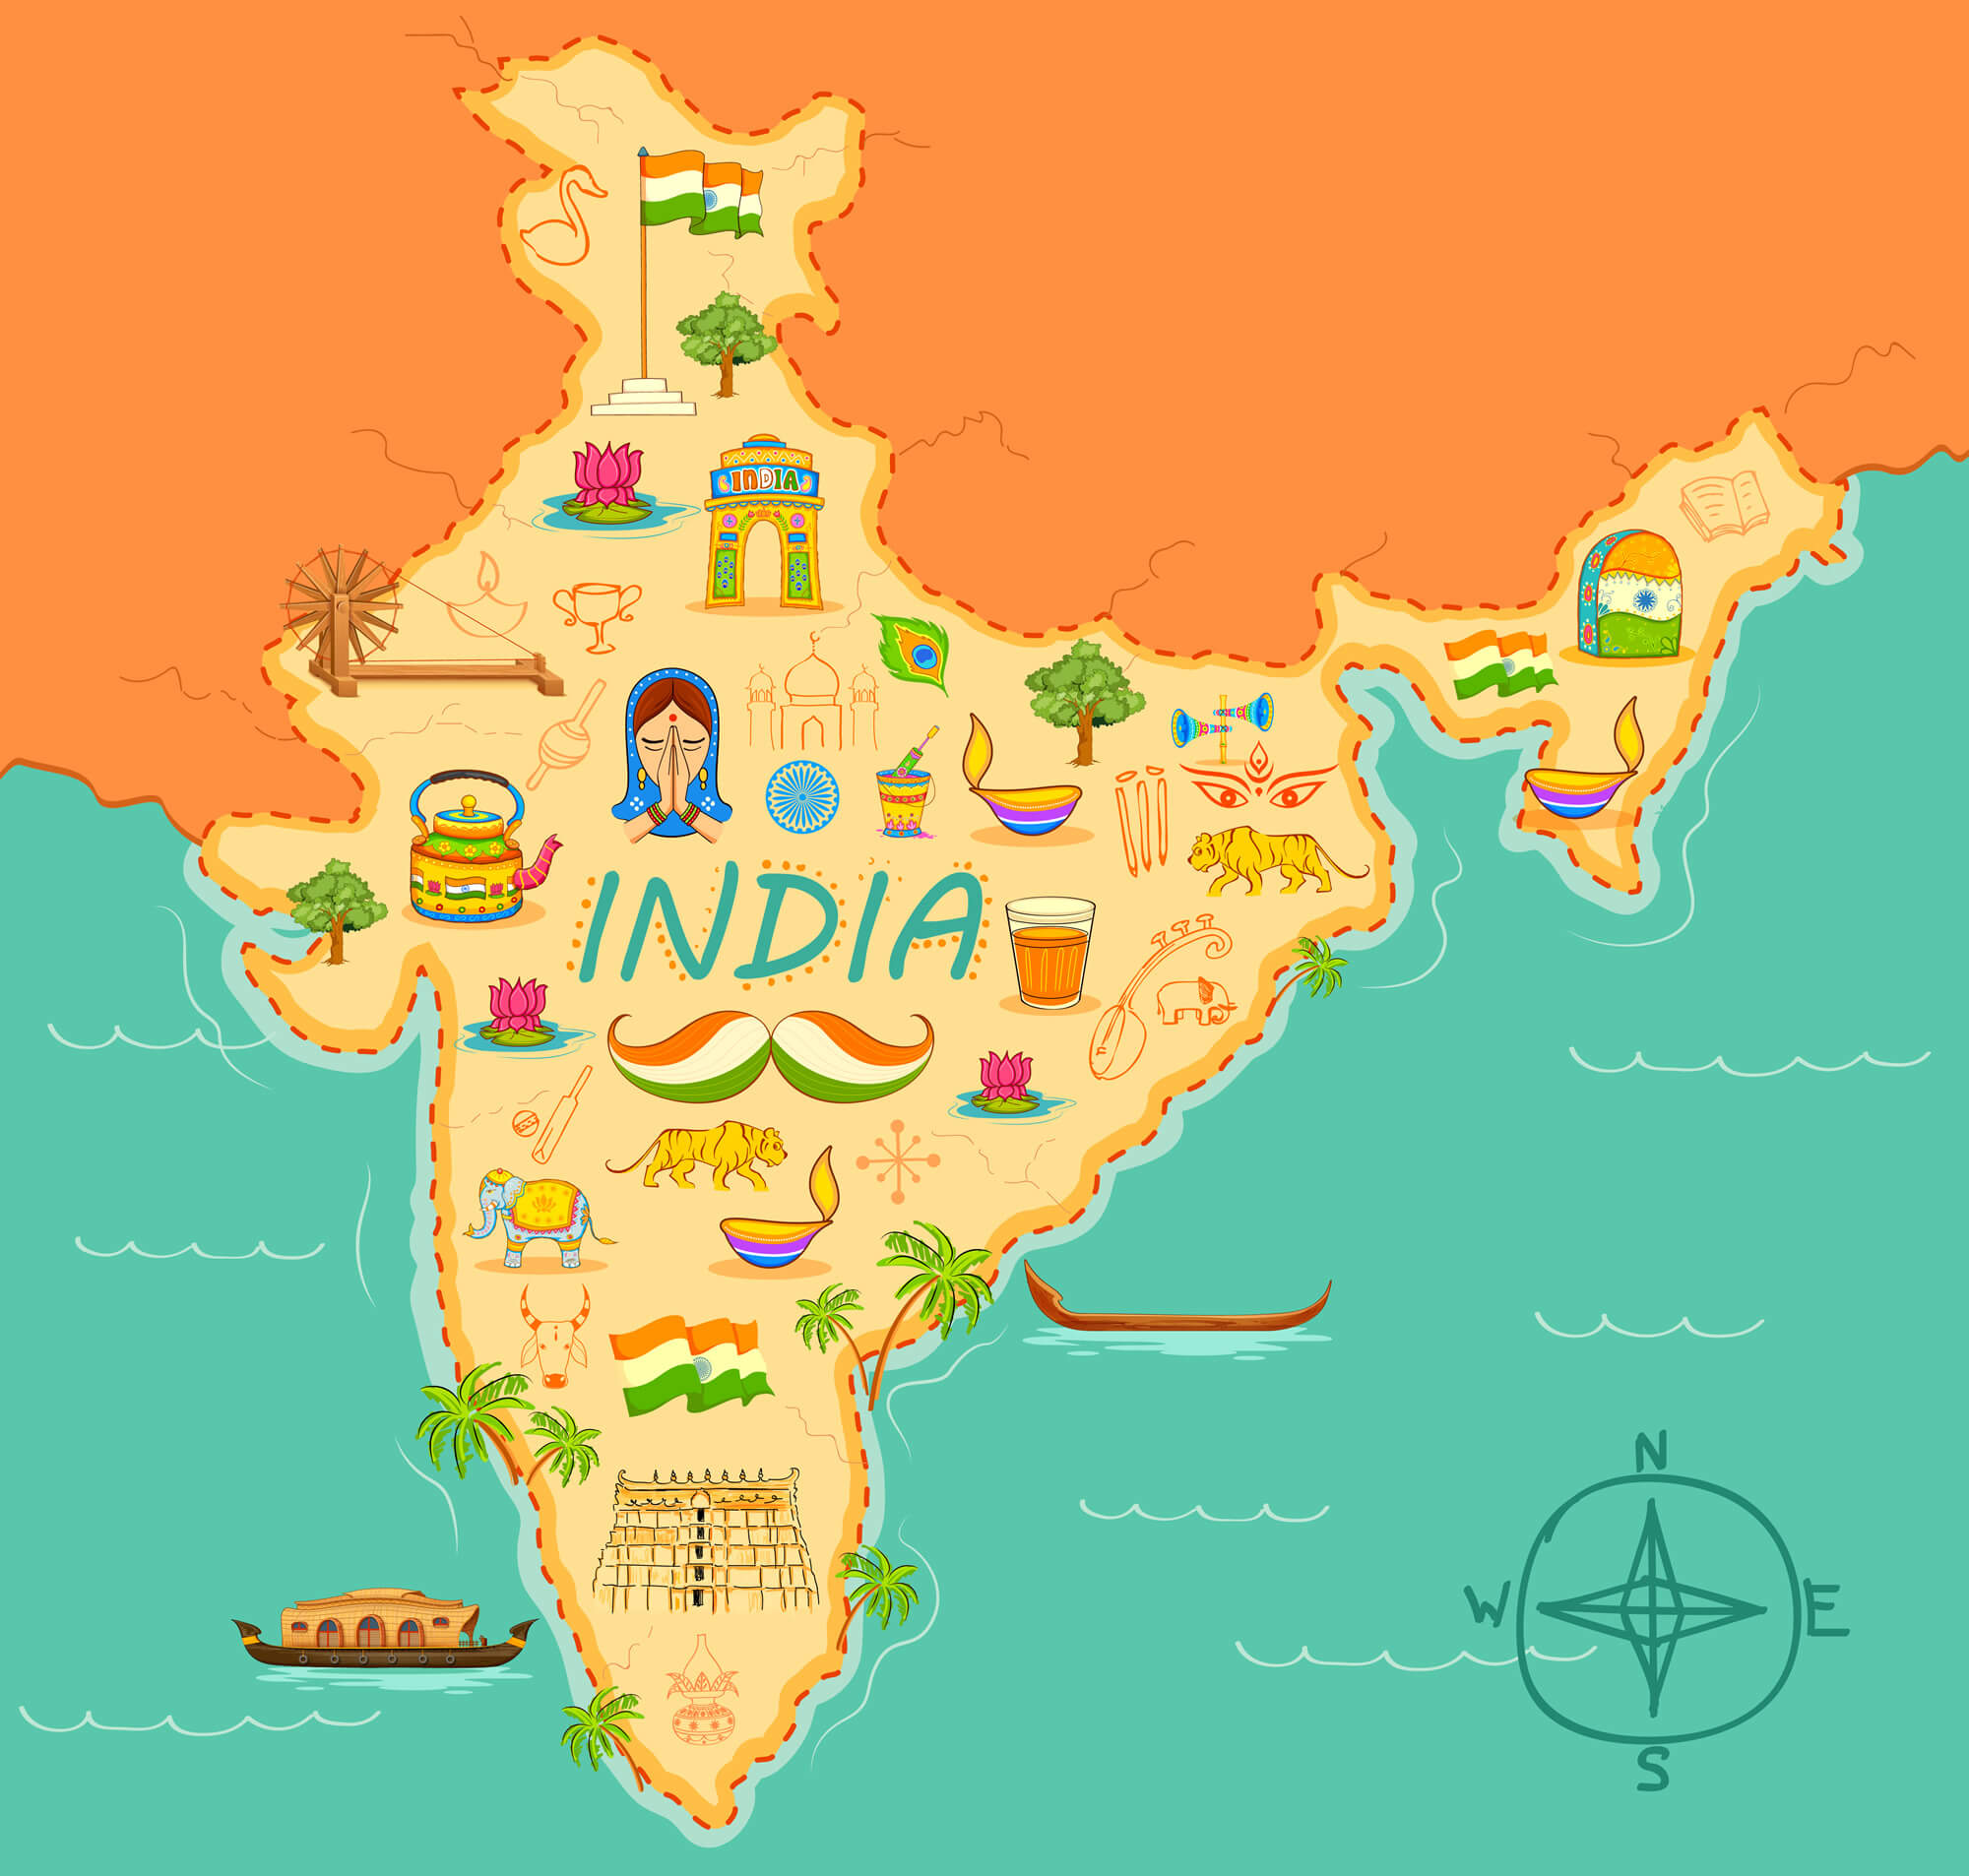 India Kitsch Art of Forming Map